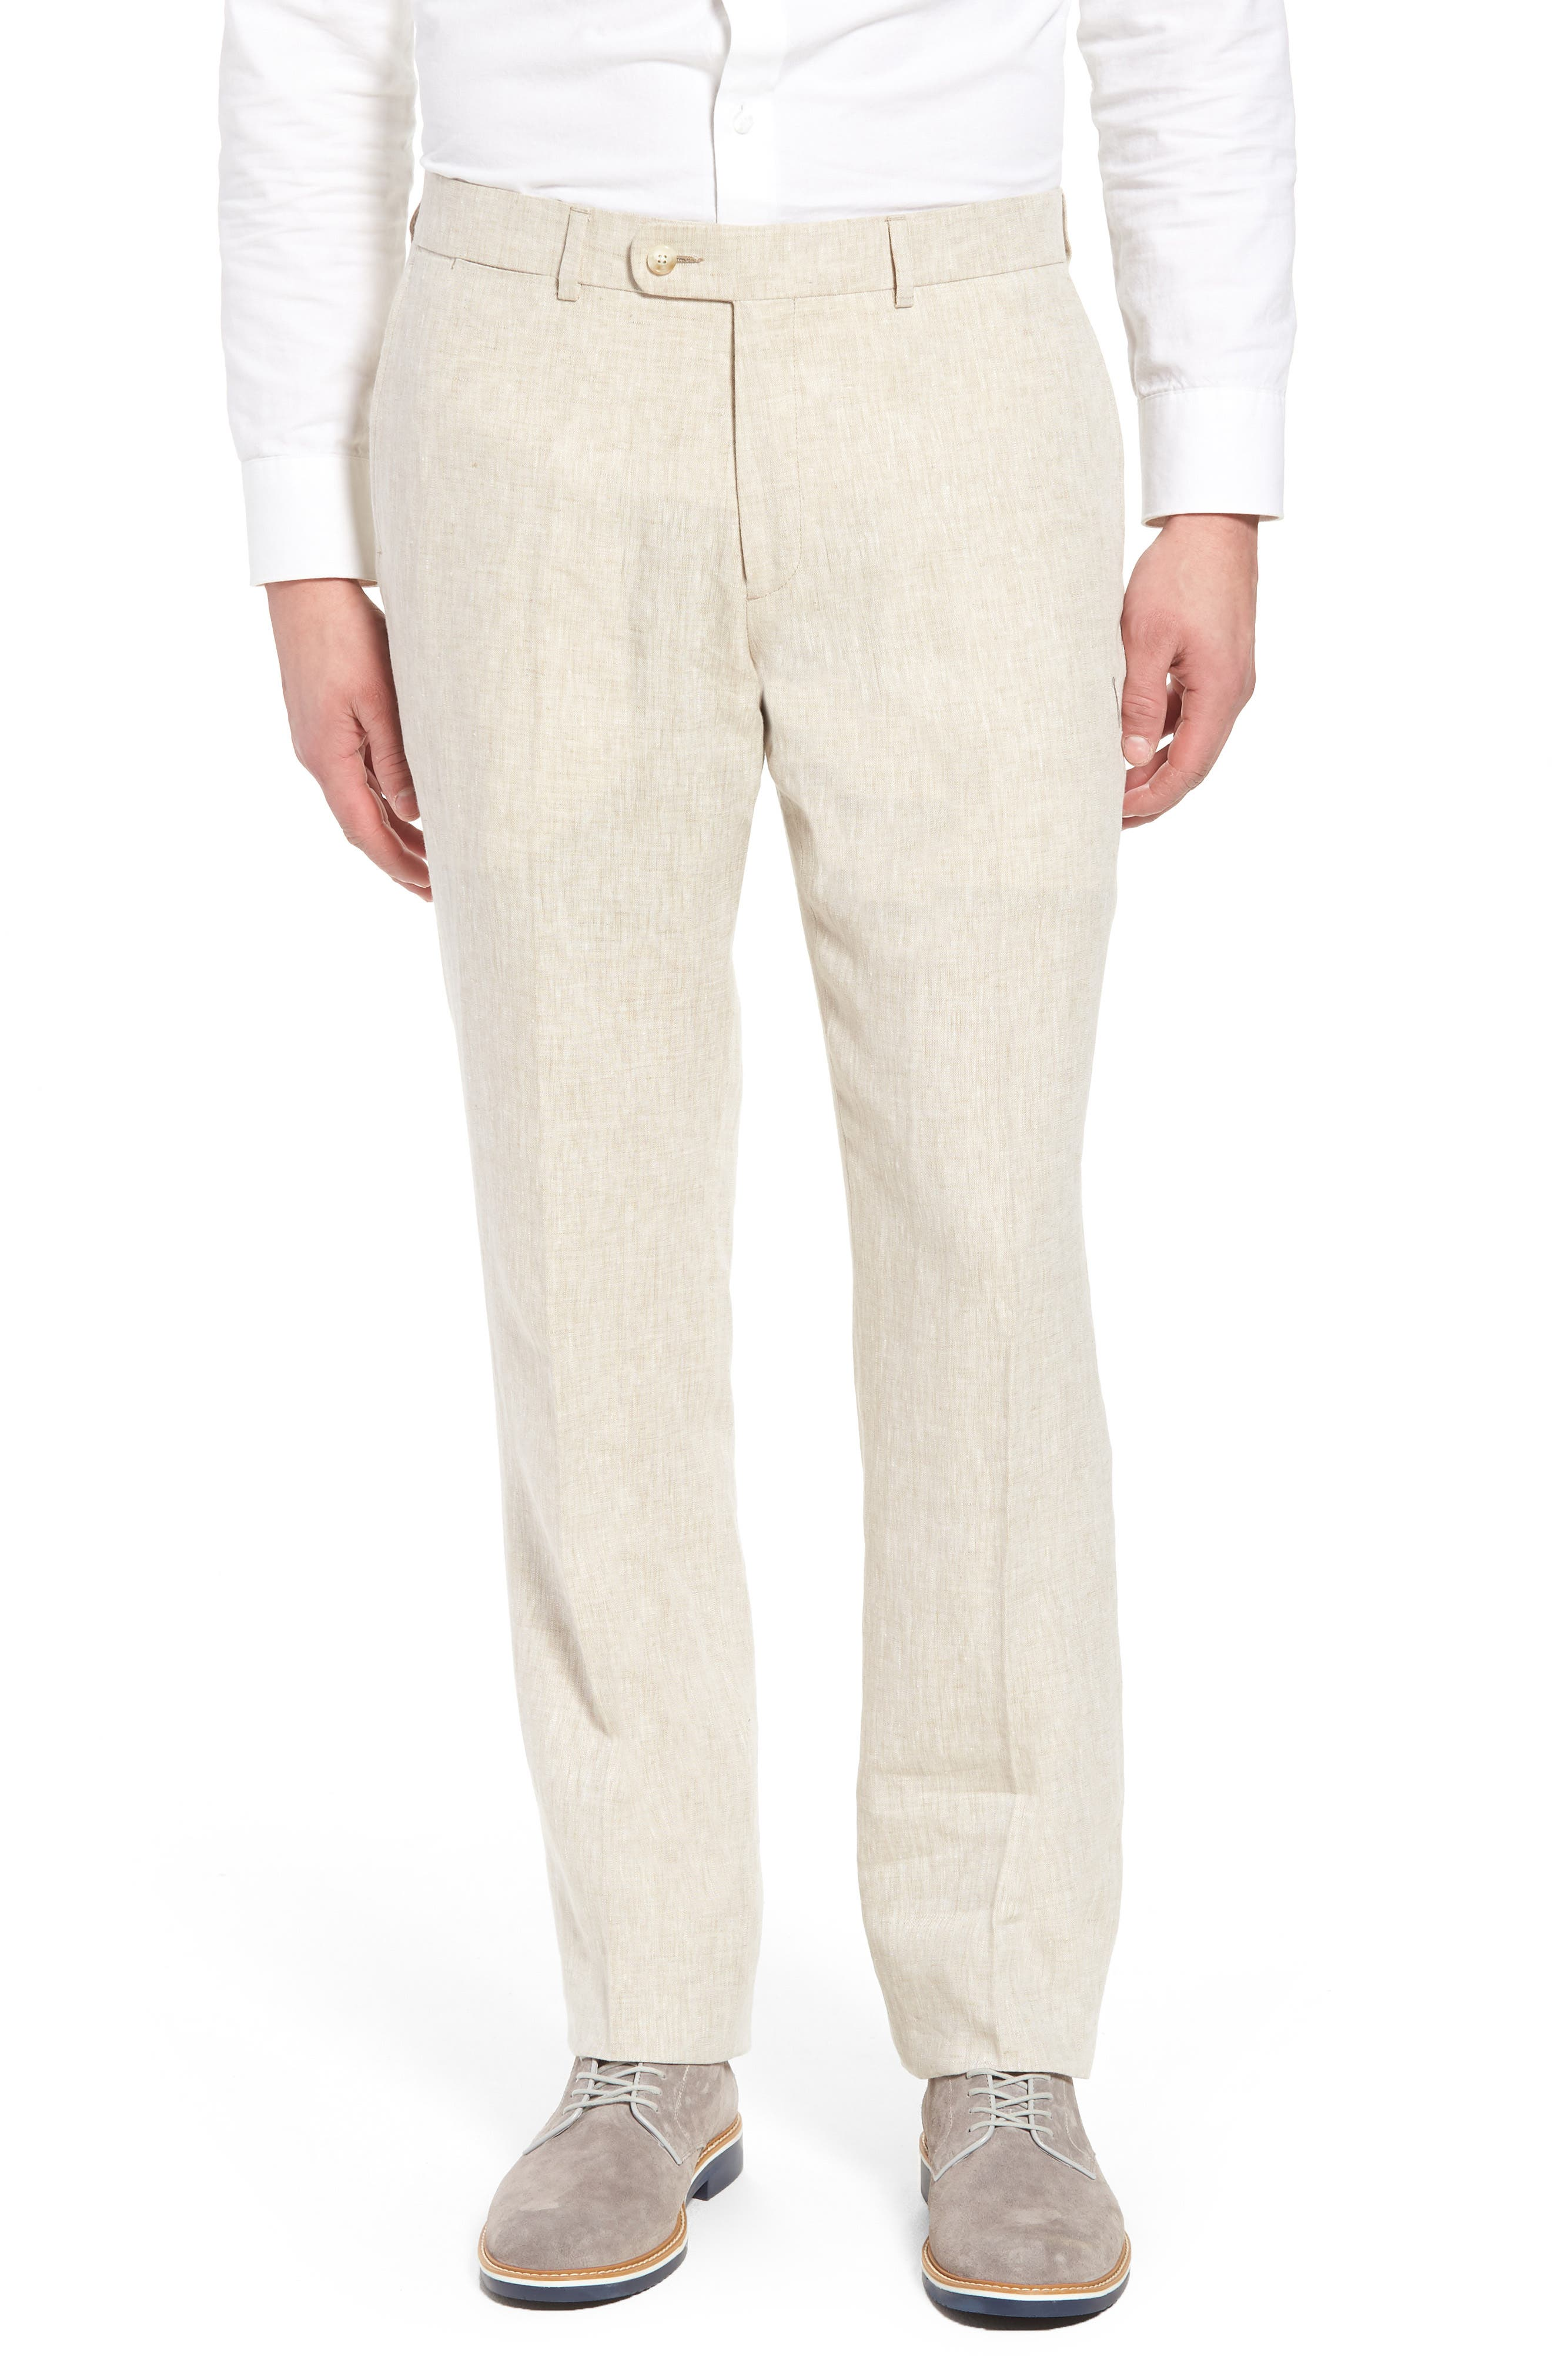 Kroon Andrew AIM Flat Front Linen Trousers